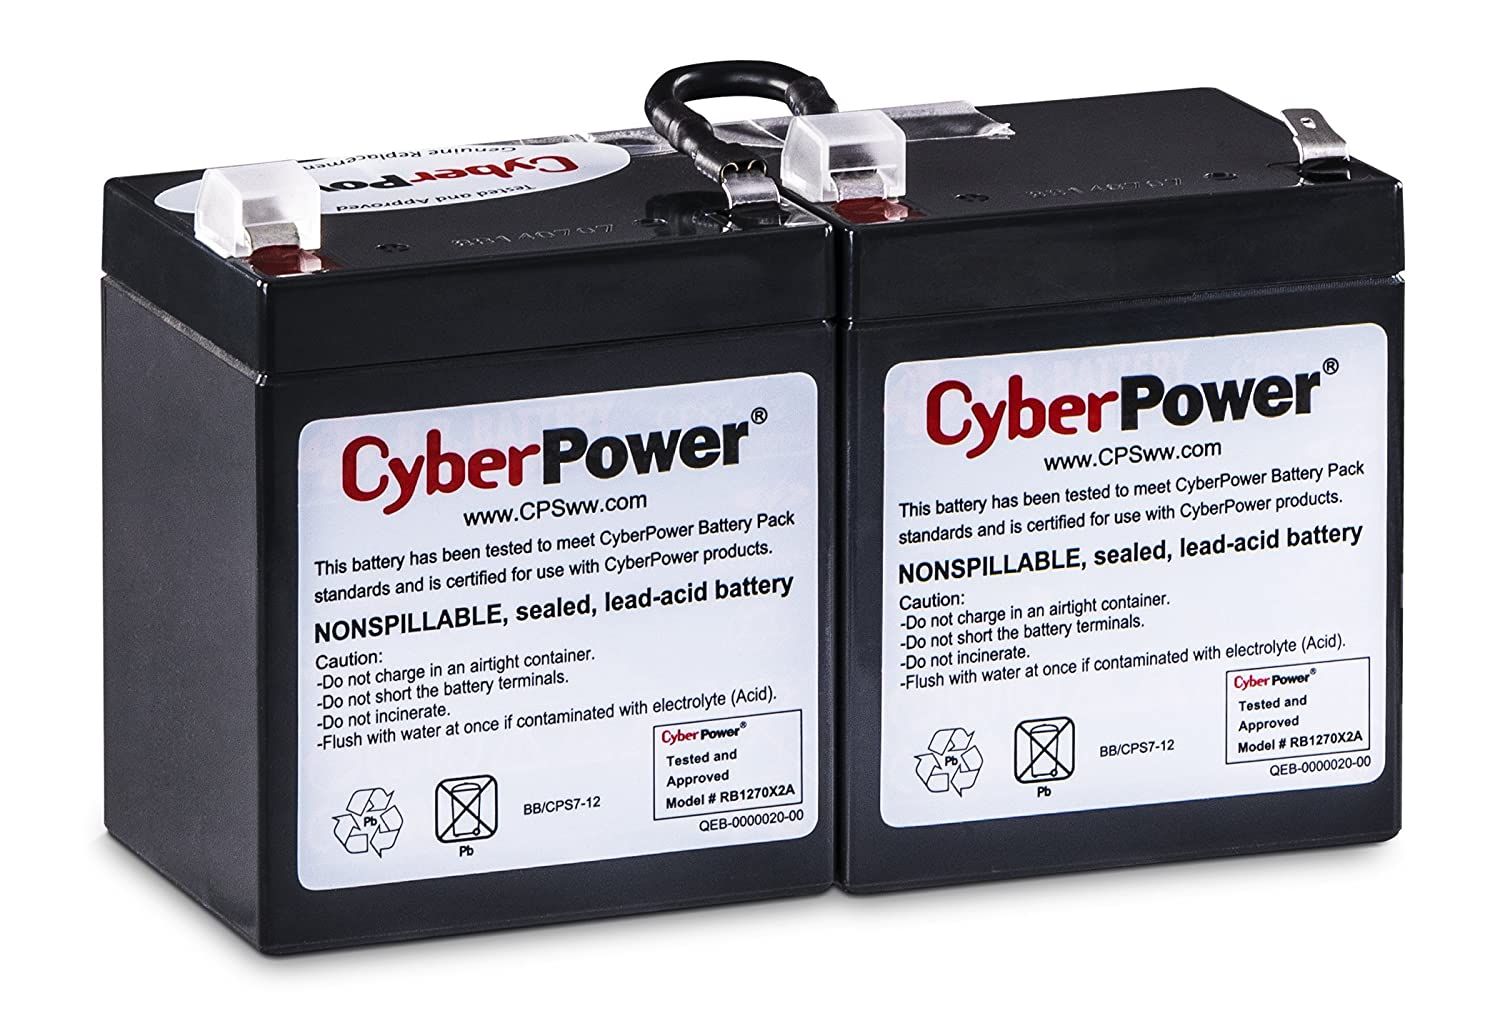 CyberPower RB1270X2A UPS Replacement Battery Cartridge Cyber Power CA